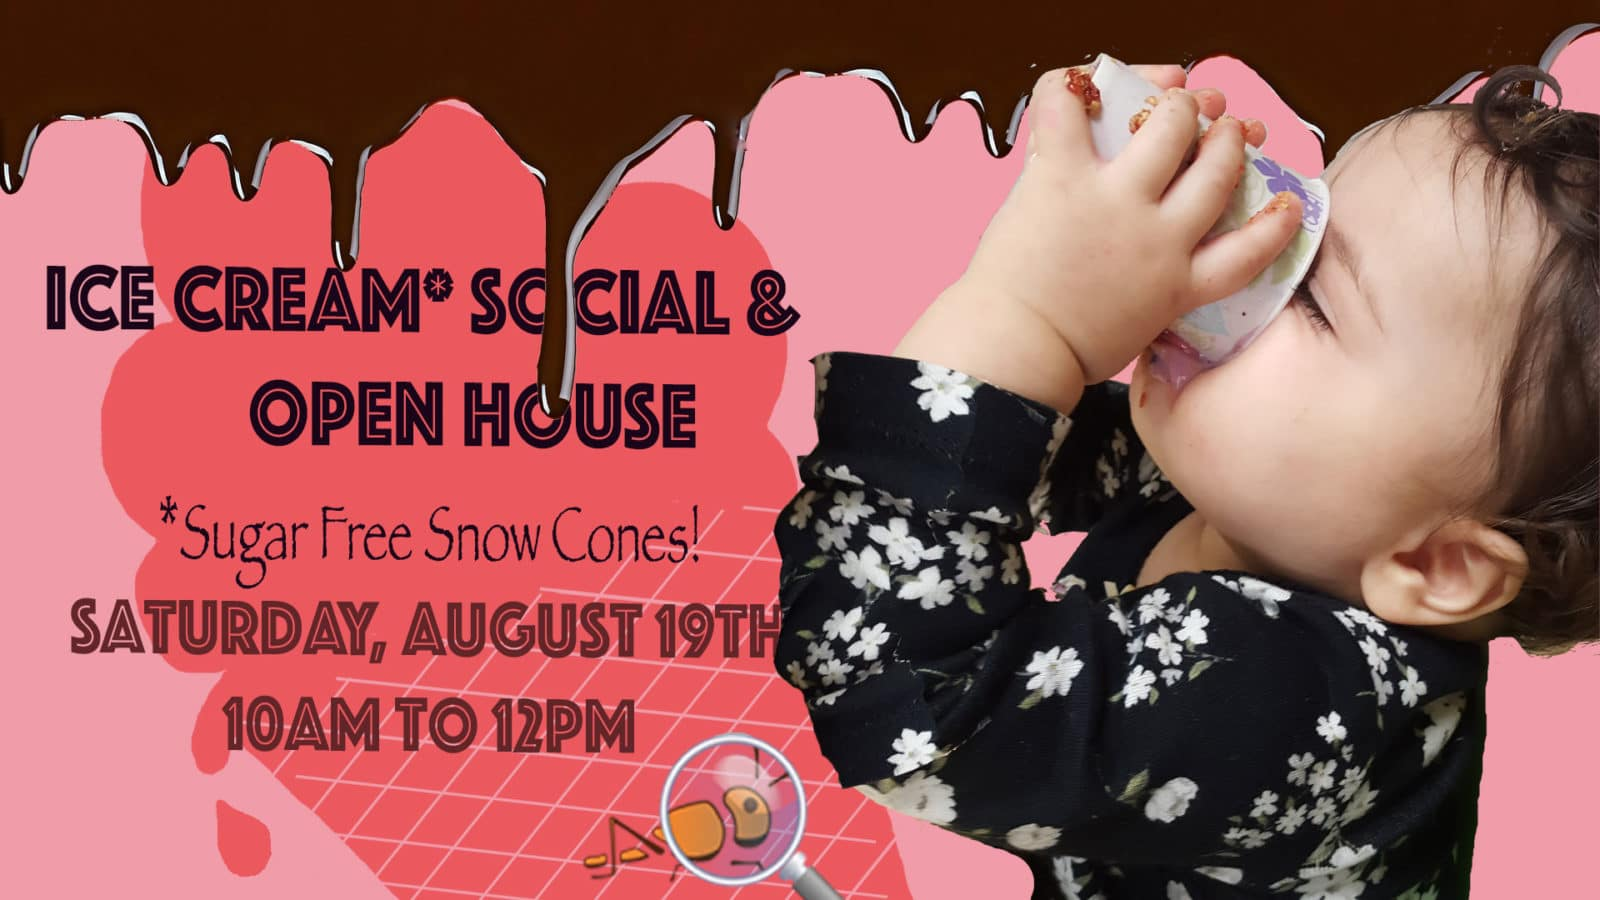 Ice Cream Social & Open House on August 19th